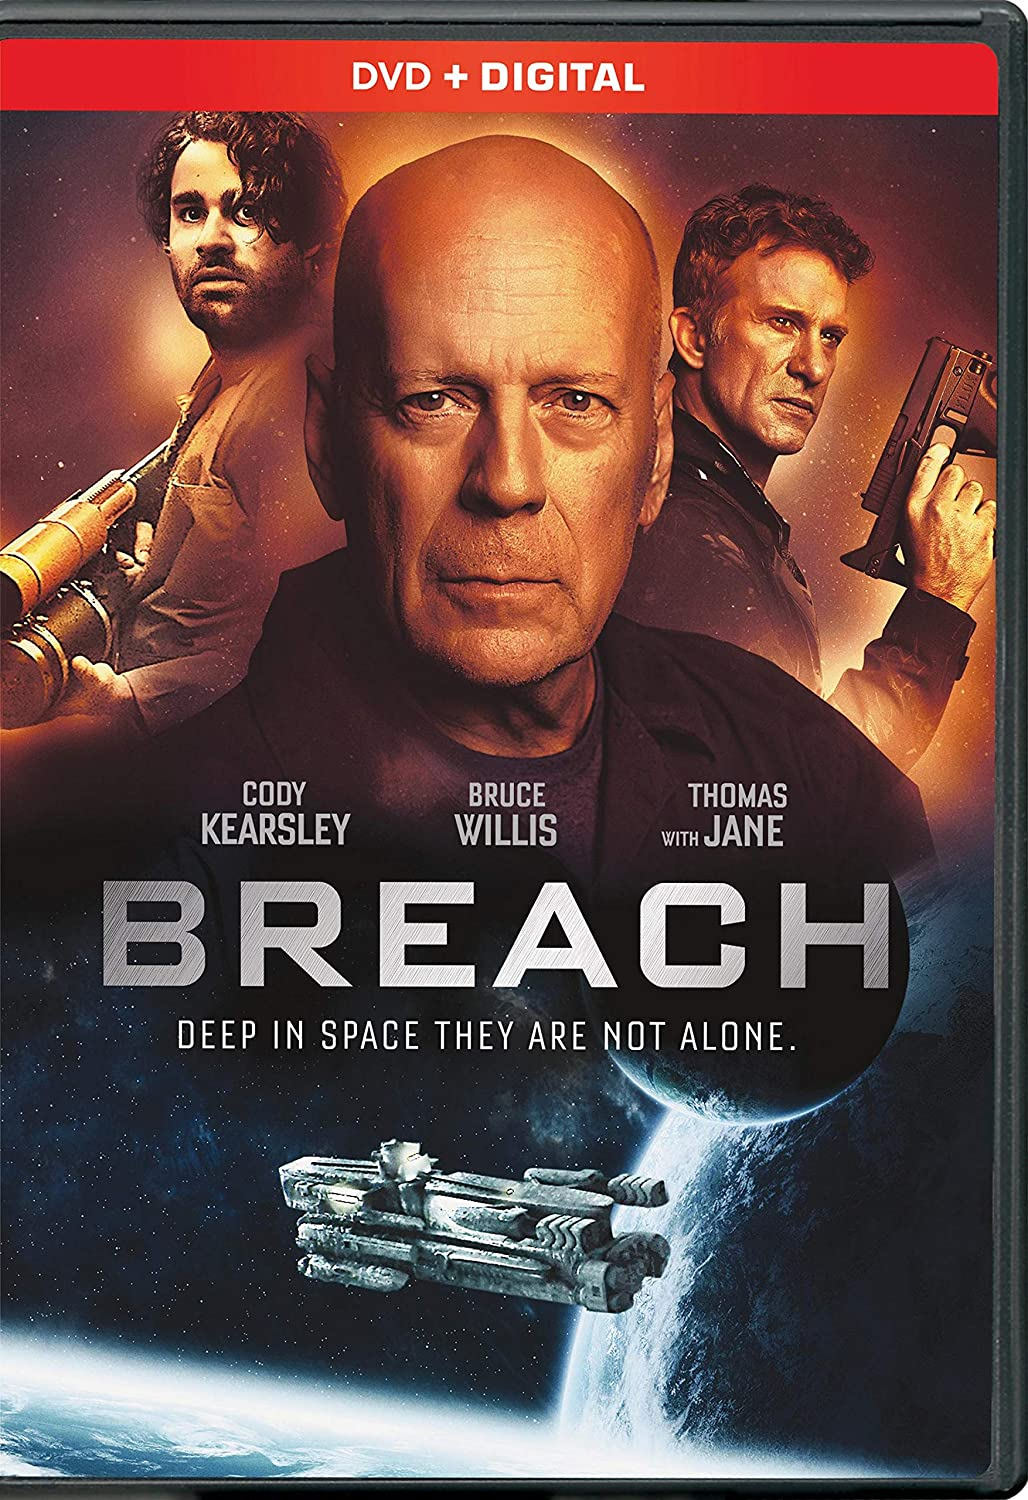 Breach Movie Review (Paramount Pictures DVD)